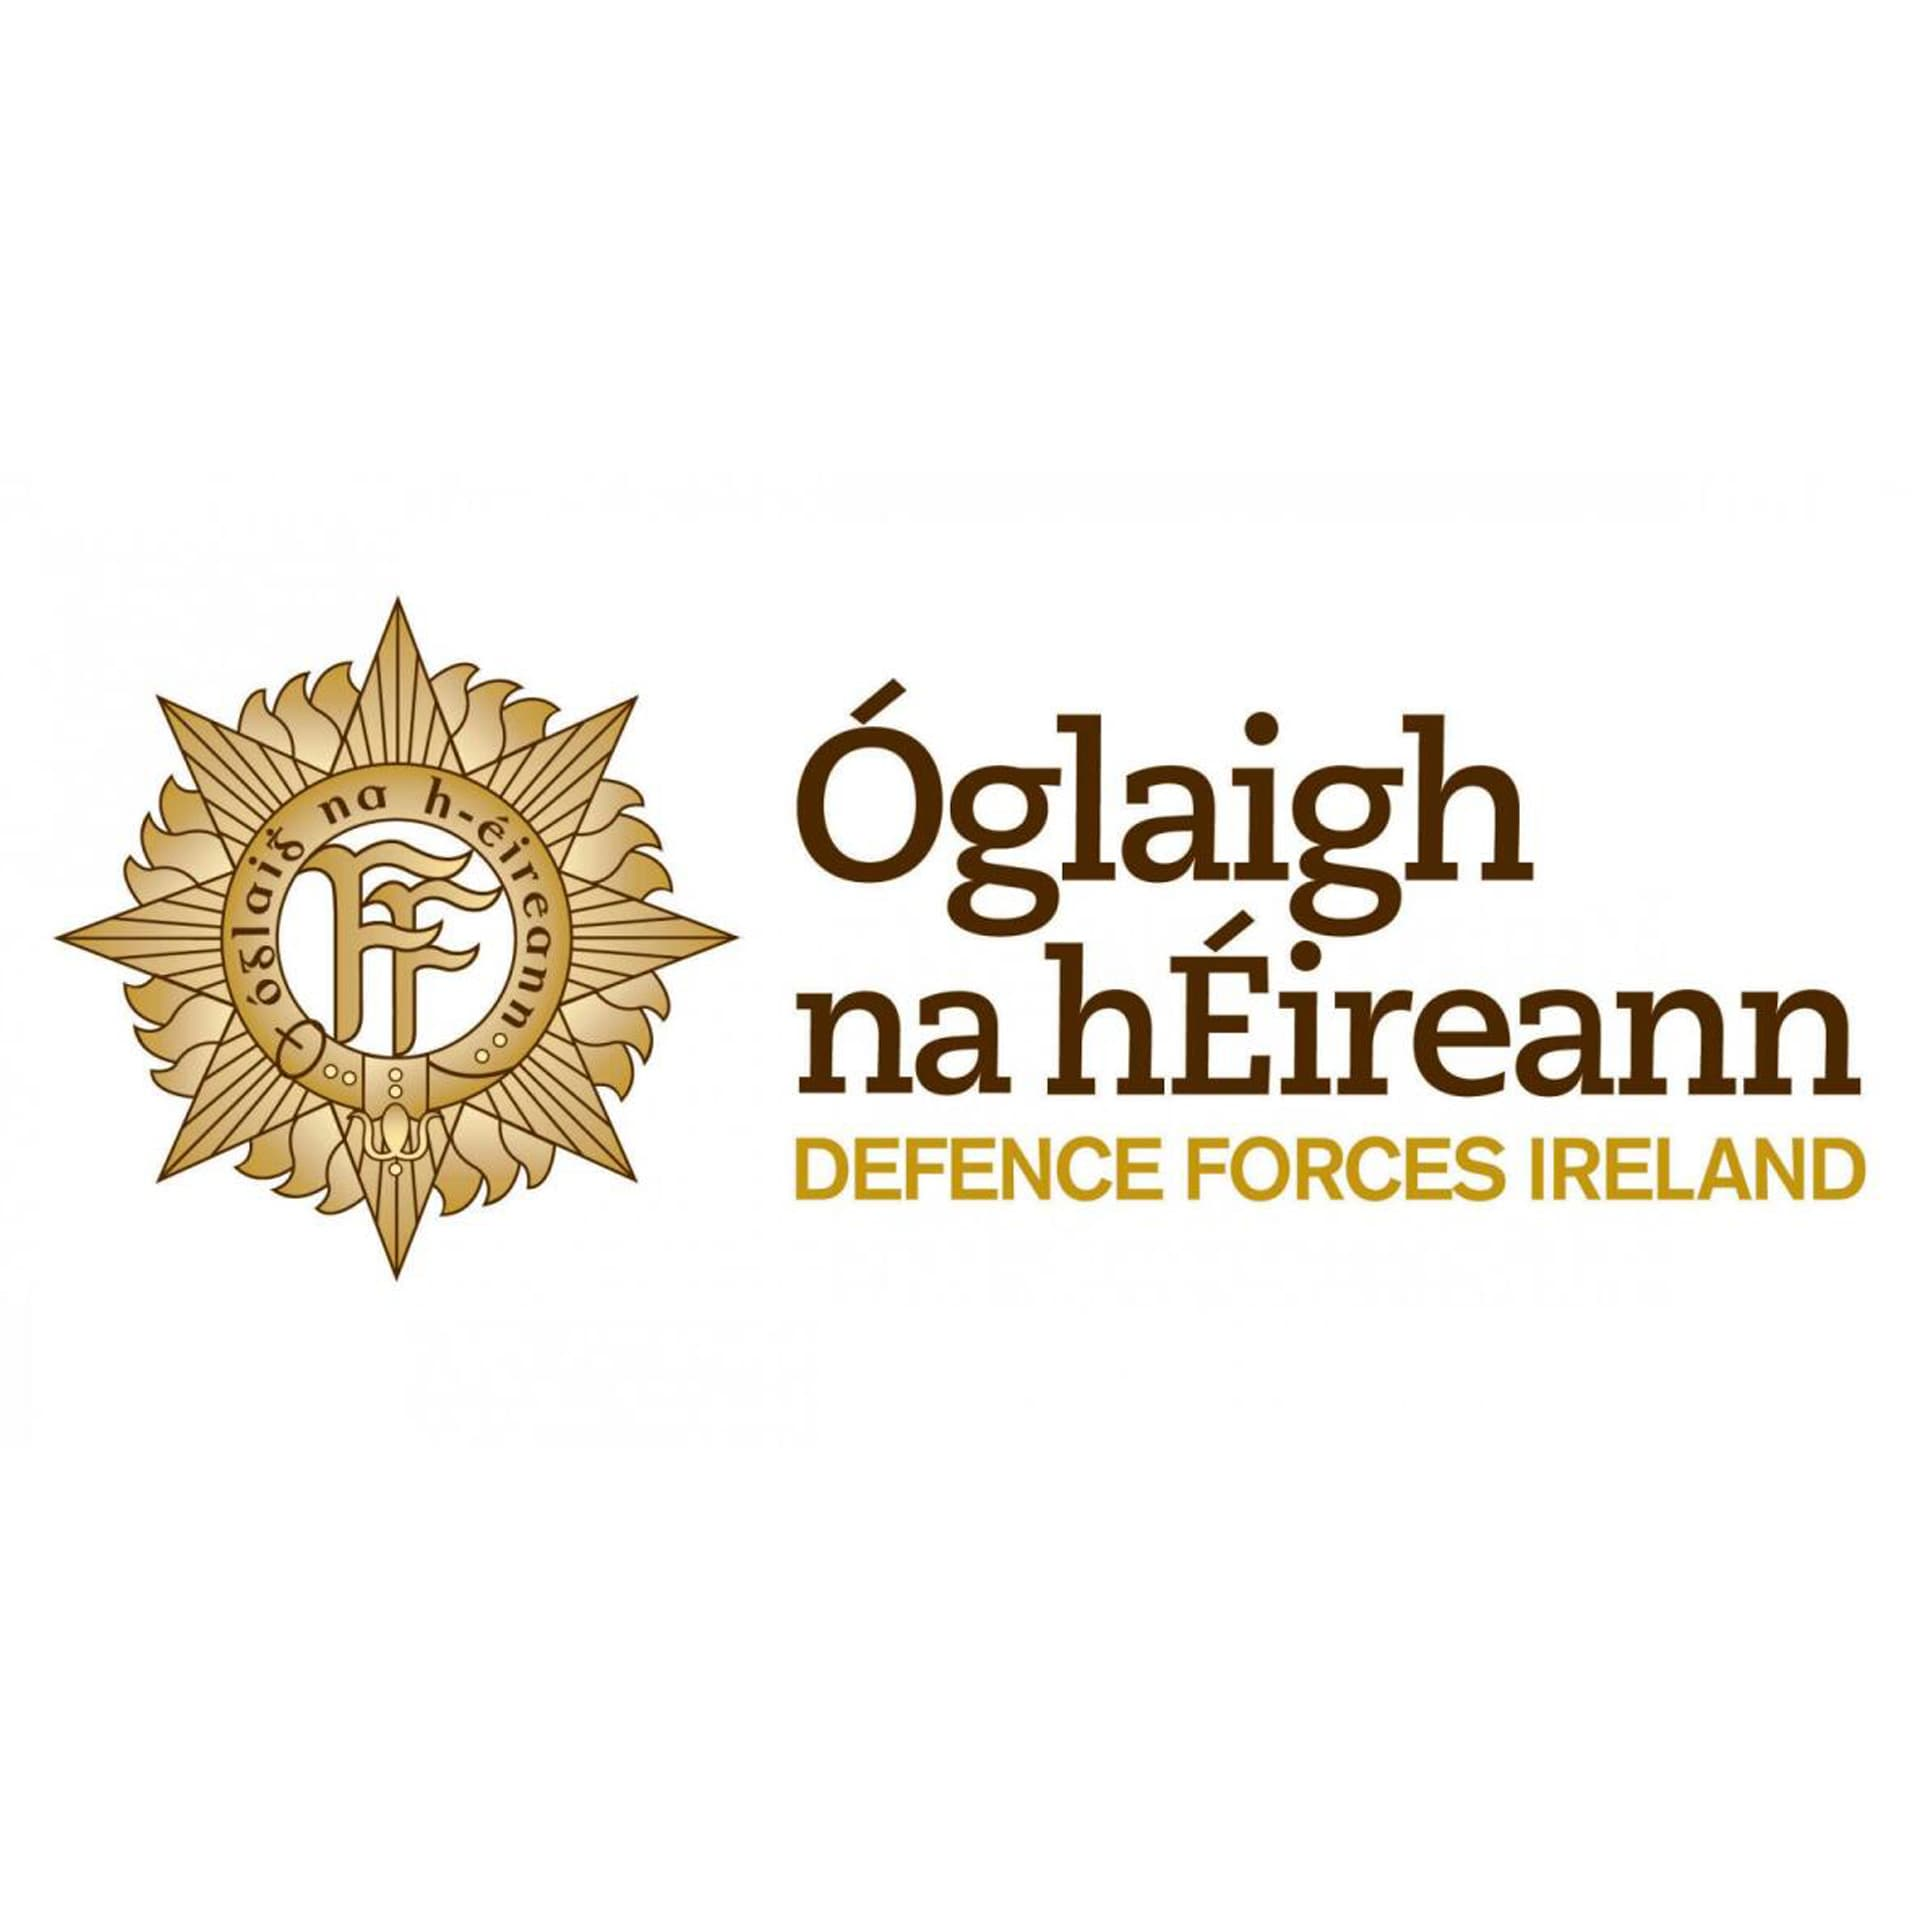 Defence Forces Ireland – Military Archives